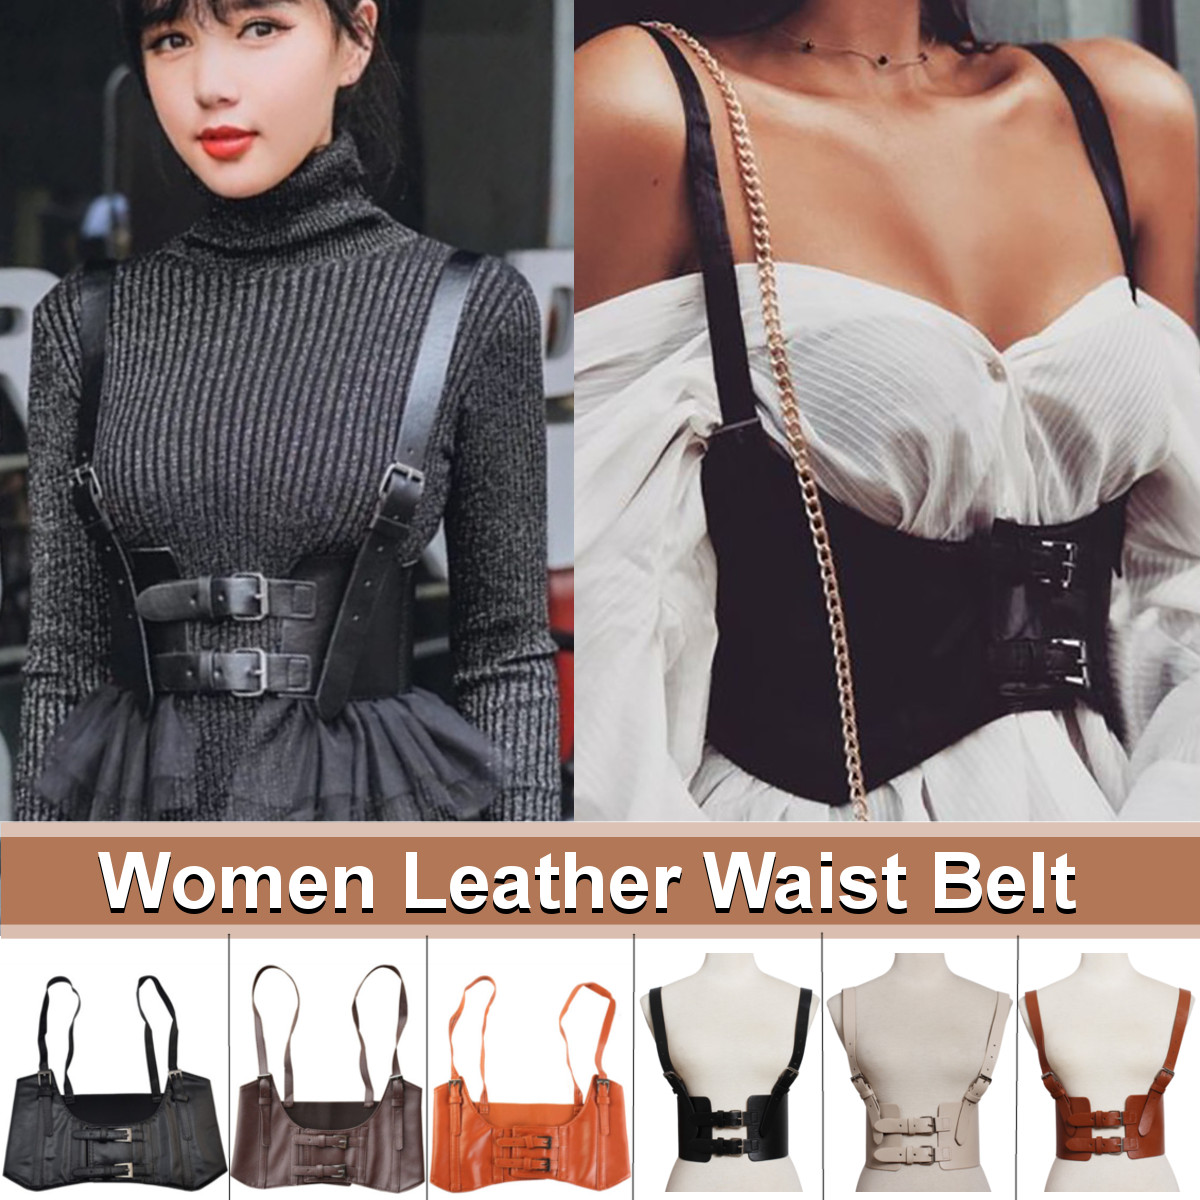 Brand New Arrival Vintage Women's Corset Vest Steampunk Harness Stretchy Waistcoat Wide Cincher With Buckle Cummerbunds 2020